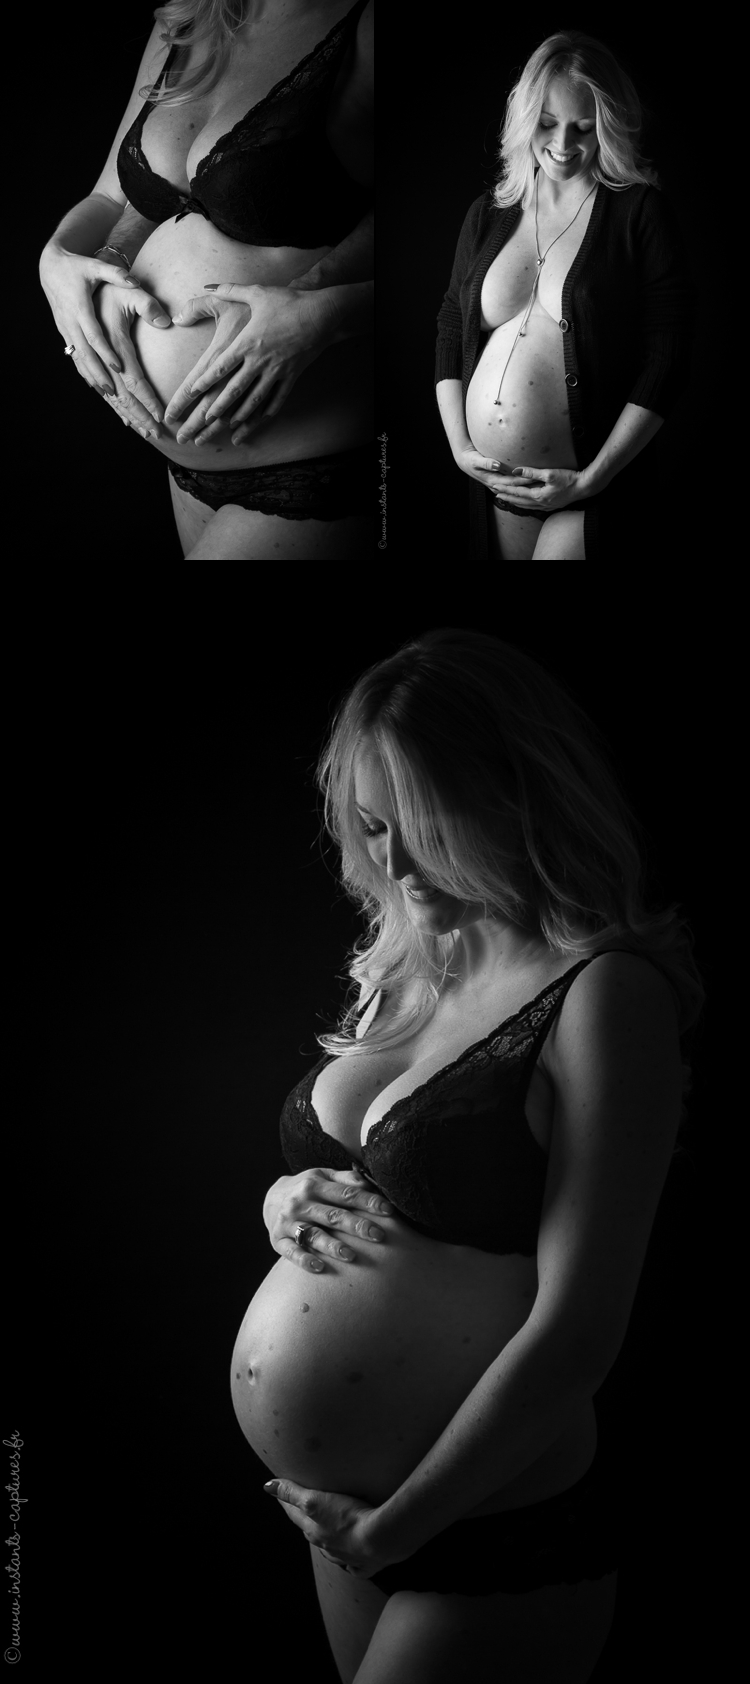 photo Femmeenceinte photographeparis21 Specialiste Photo Femme enceinte Paris   E&L